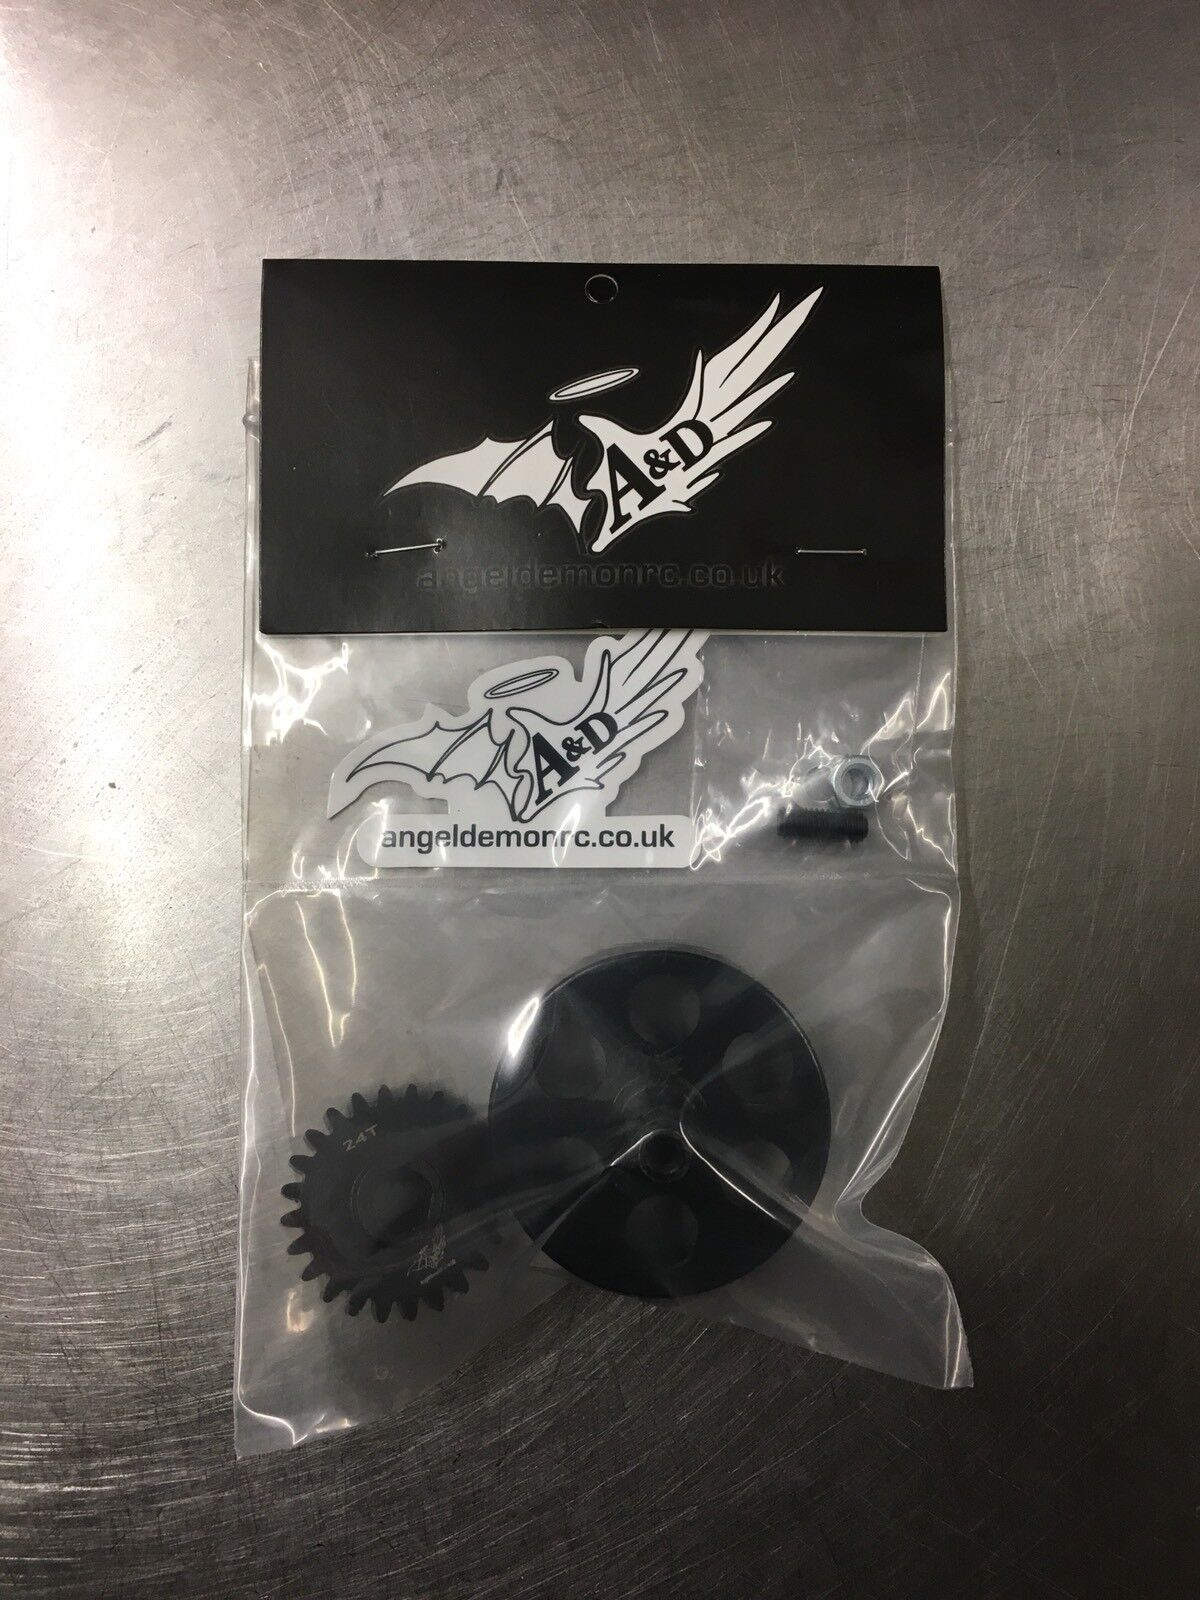 Losi Dbxl Angel & Demon Racing 21T pinion gear with clutch bell Only